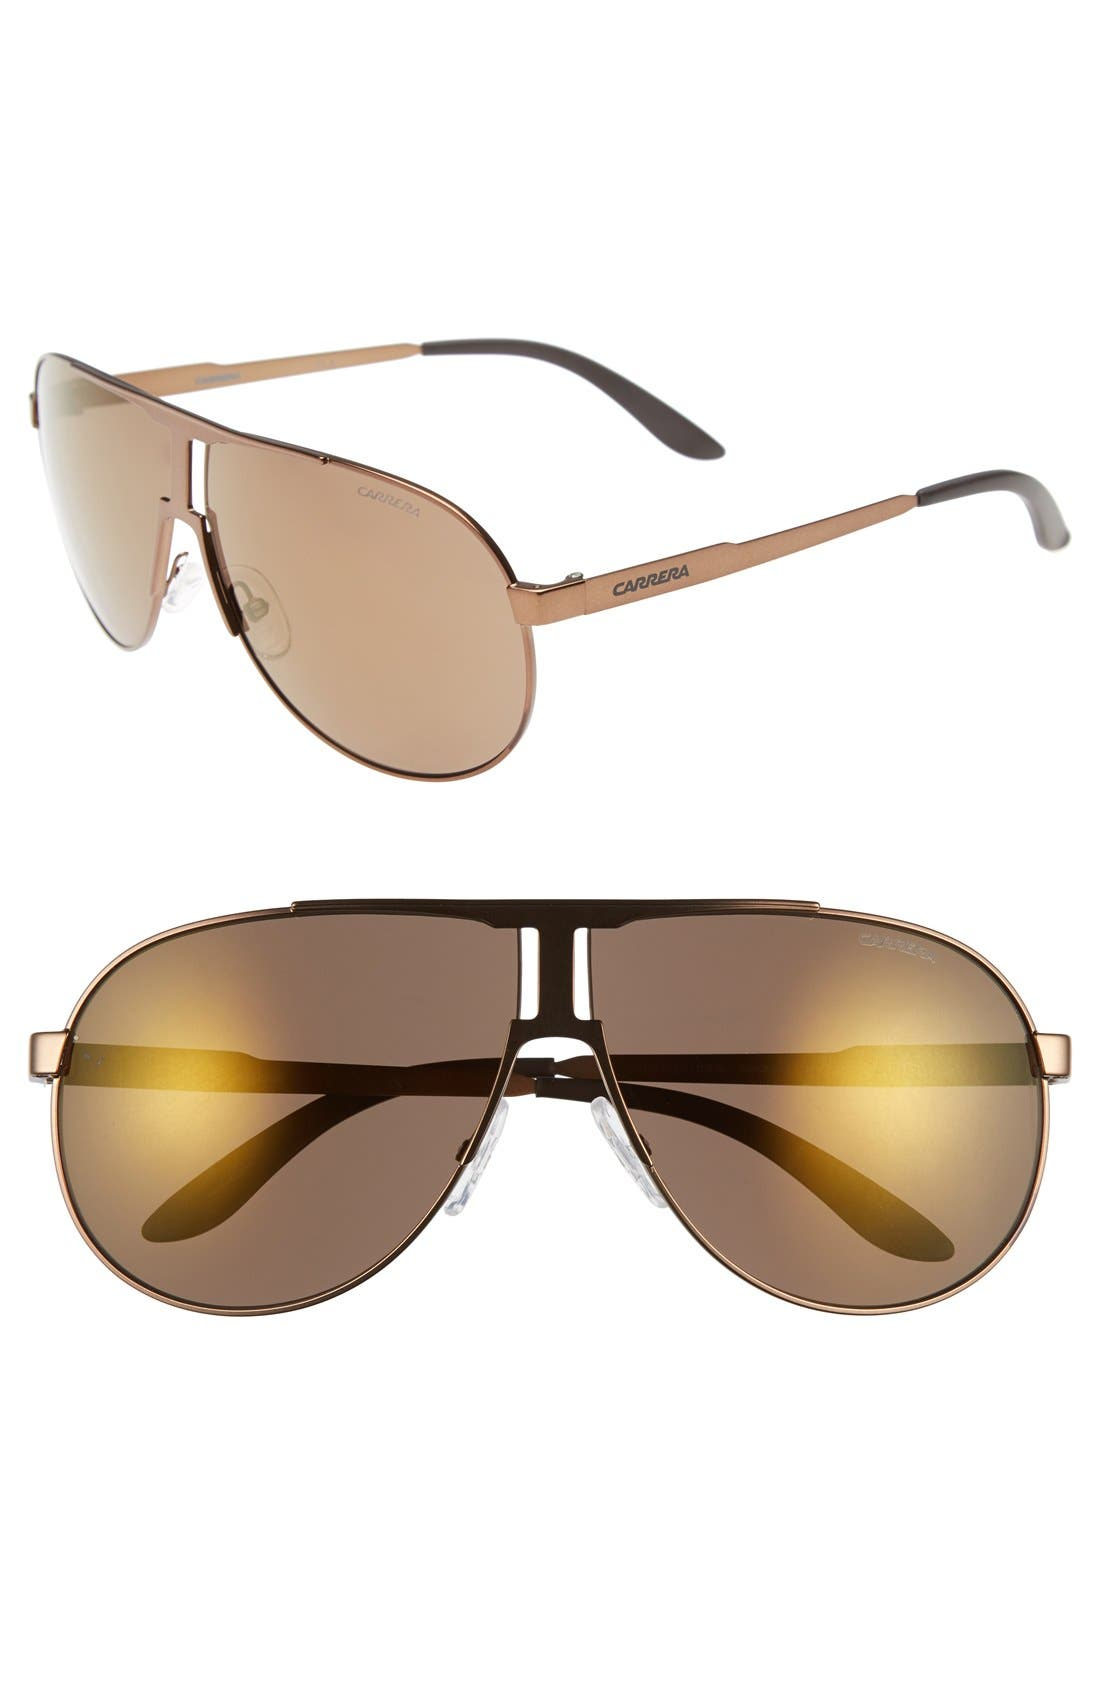 64mm Aviator Sunglasses,                         Main,                         color, Light Brown/ Violet